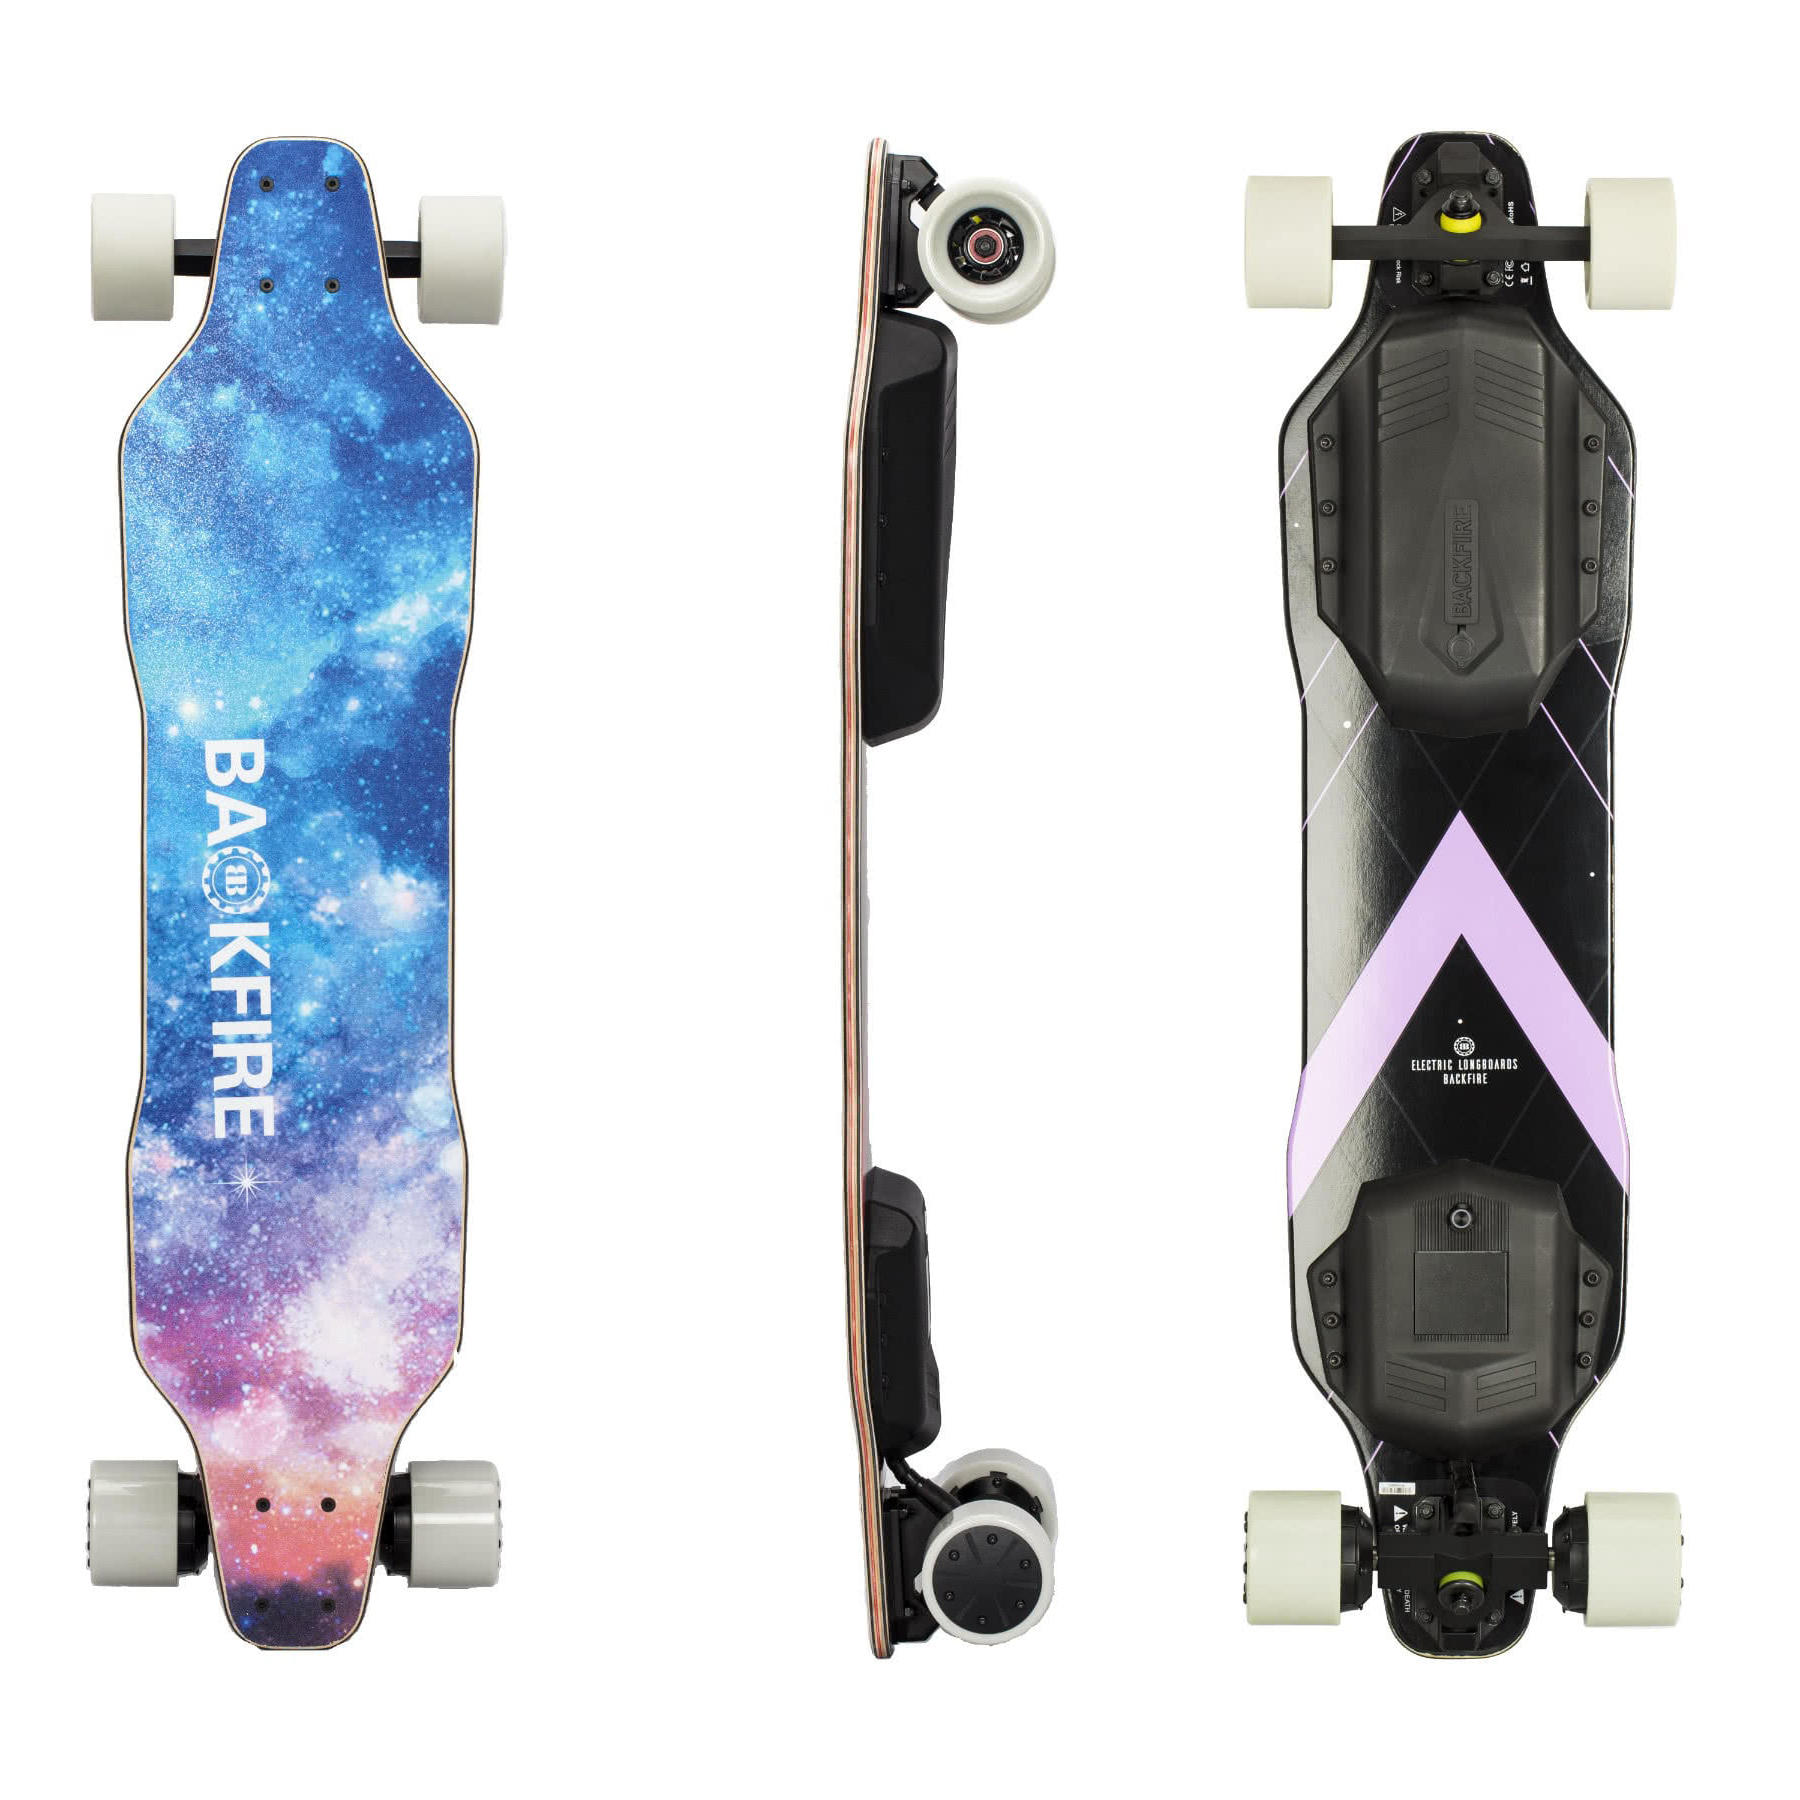 BACKFIRE G2S Electric Longboard Two 300W In-Hub Motors 36V Electric  Skateboard 23 mph Top Speed Replaceable 80mm Wheels 96mm Wheels Included